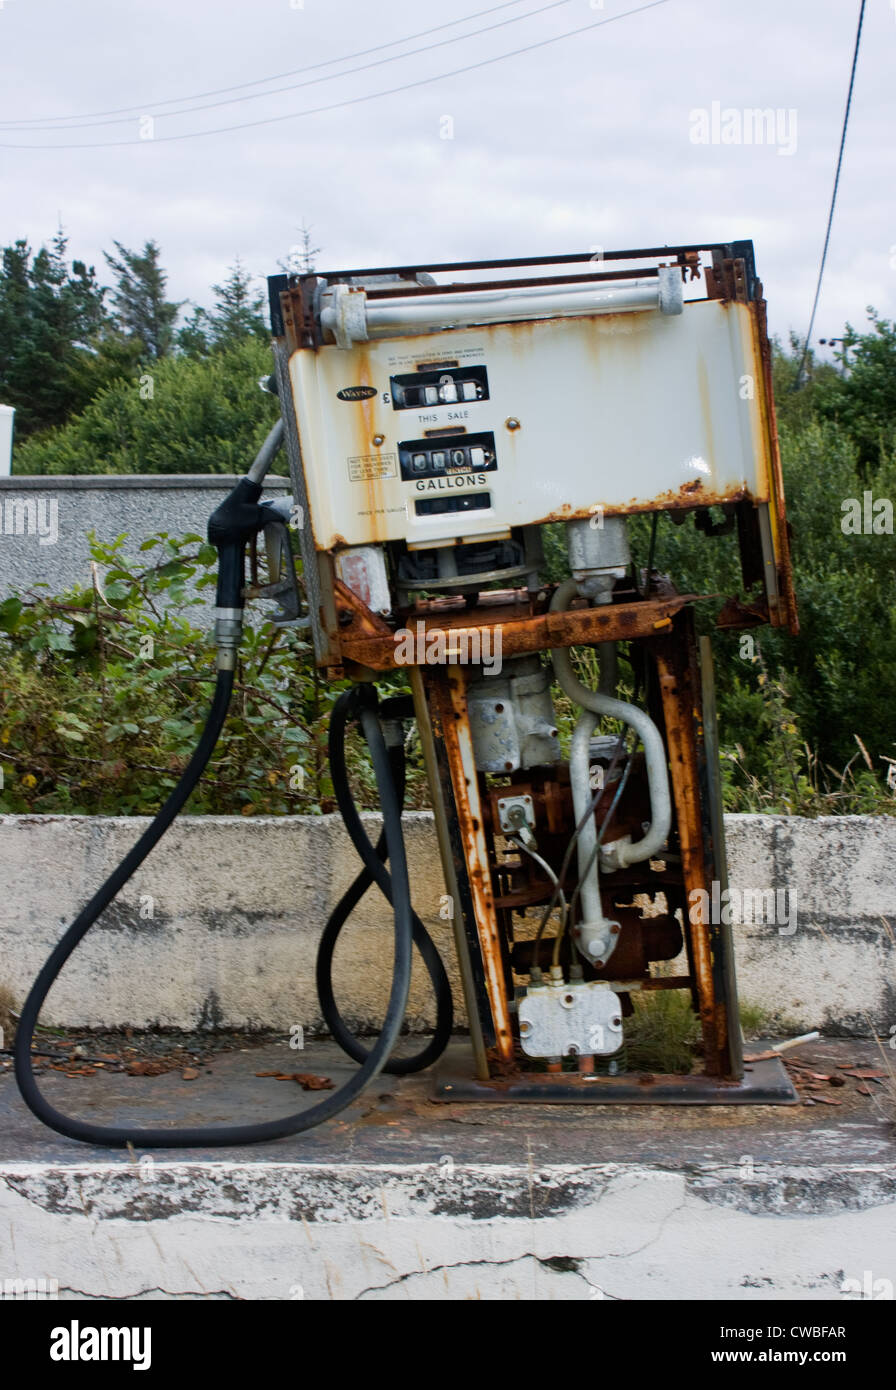 Old, rusty petrol pump at deserted filling station - Stock Image